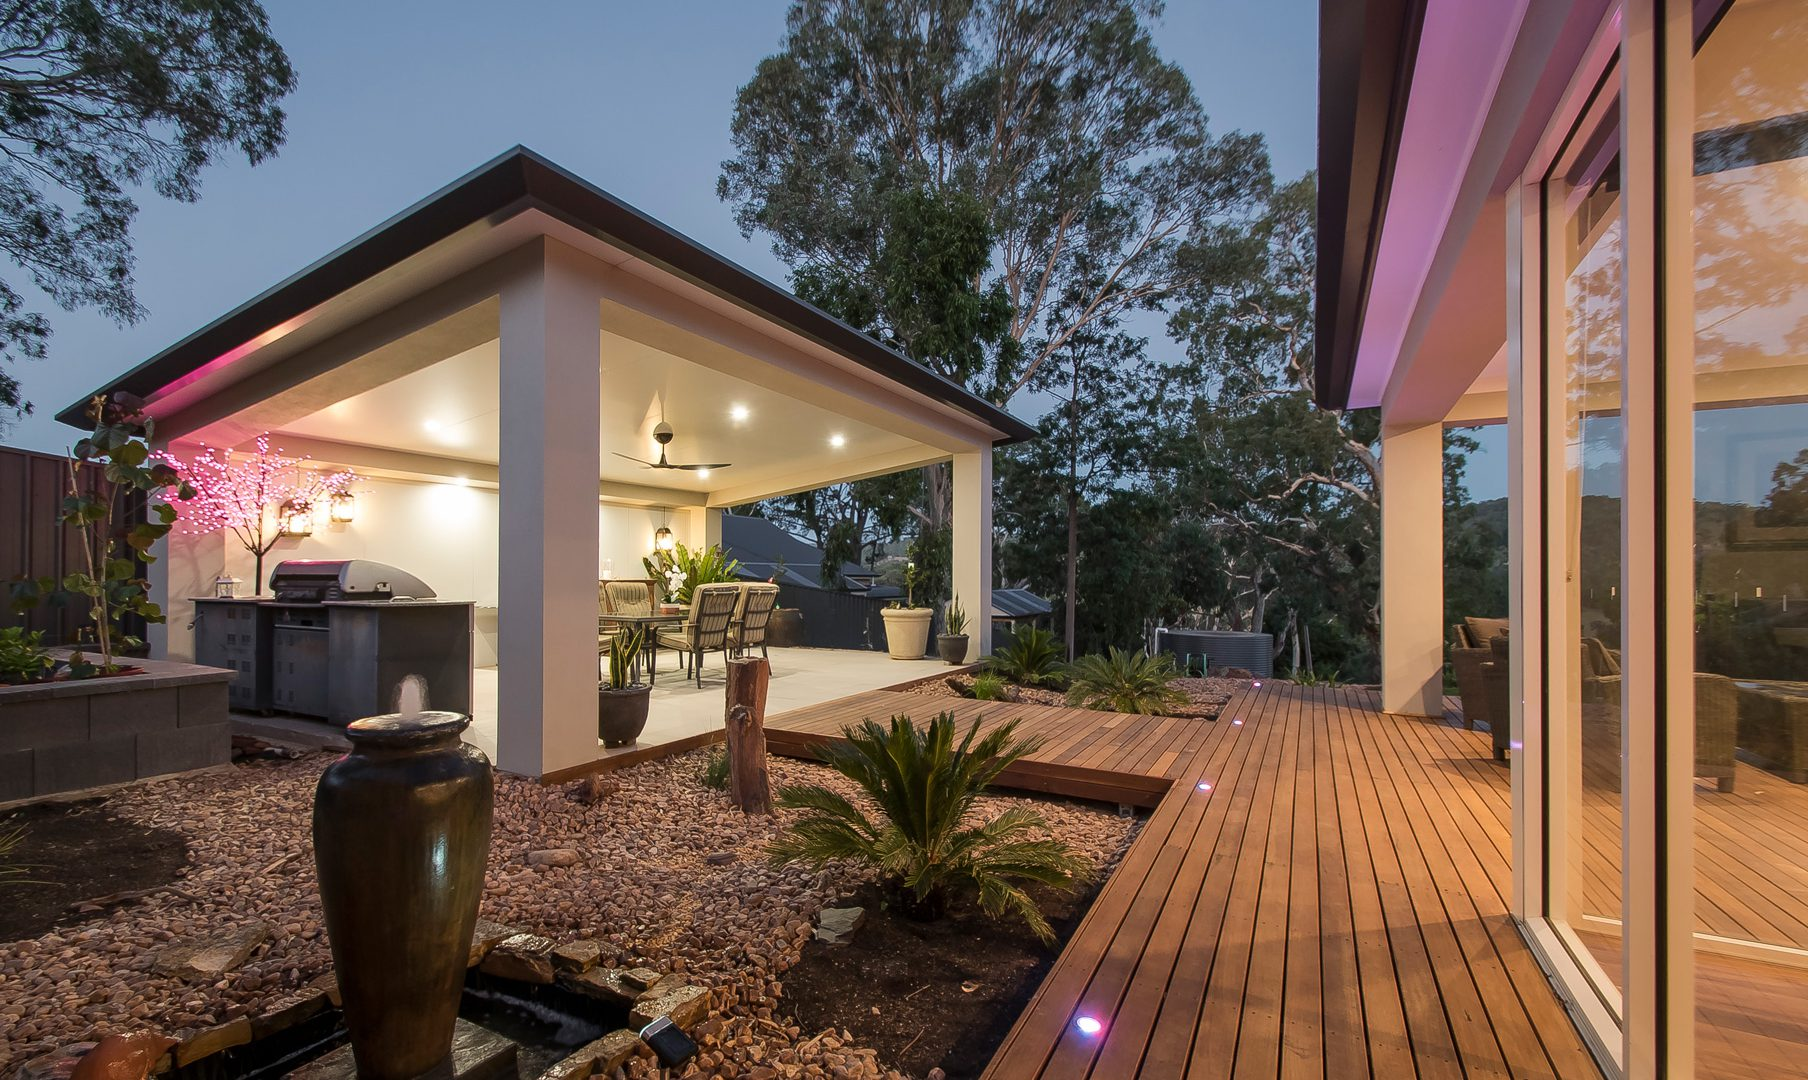 Creative-Outdoors-Skillion-Pavilion-with-Insulated-Roof-in-Blackwood-1